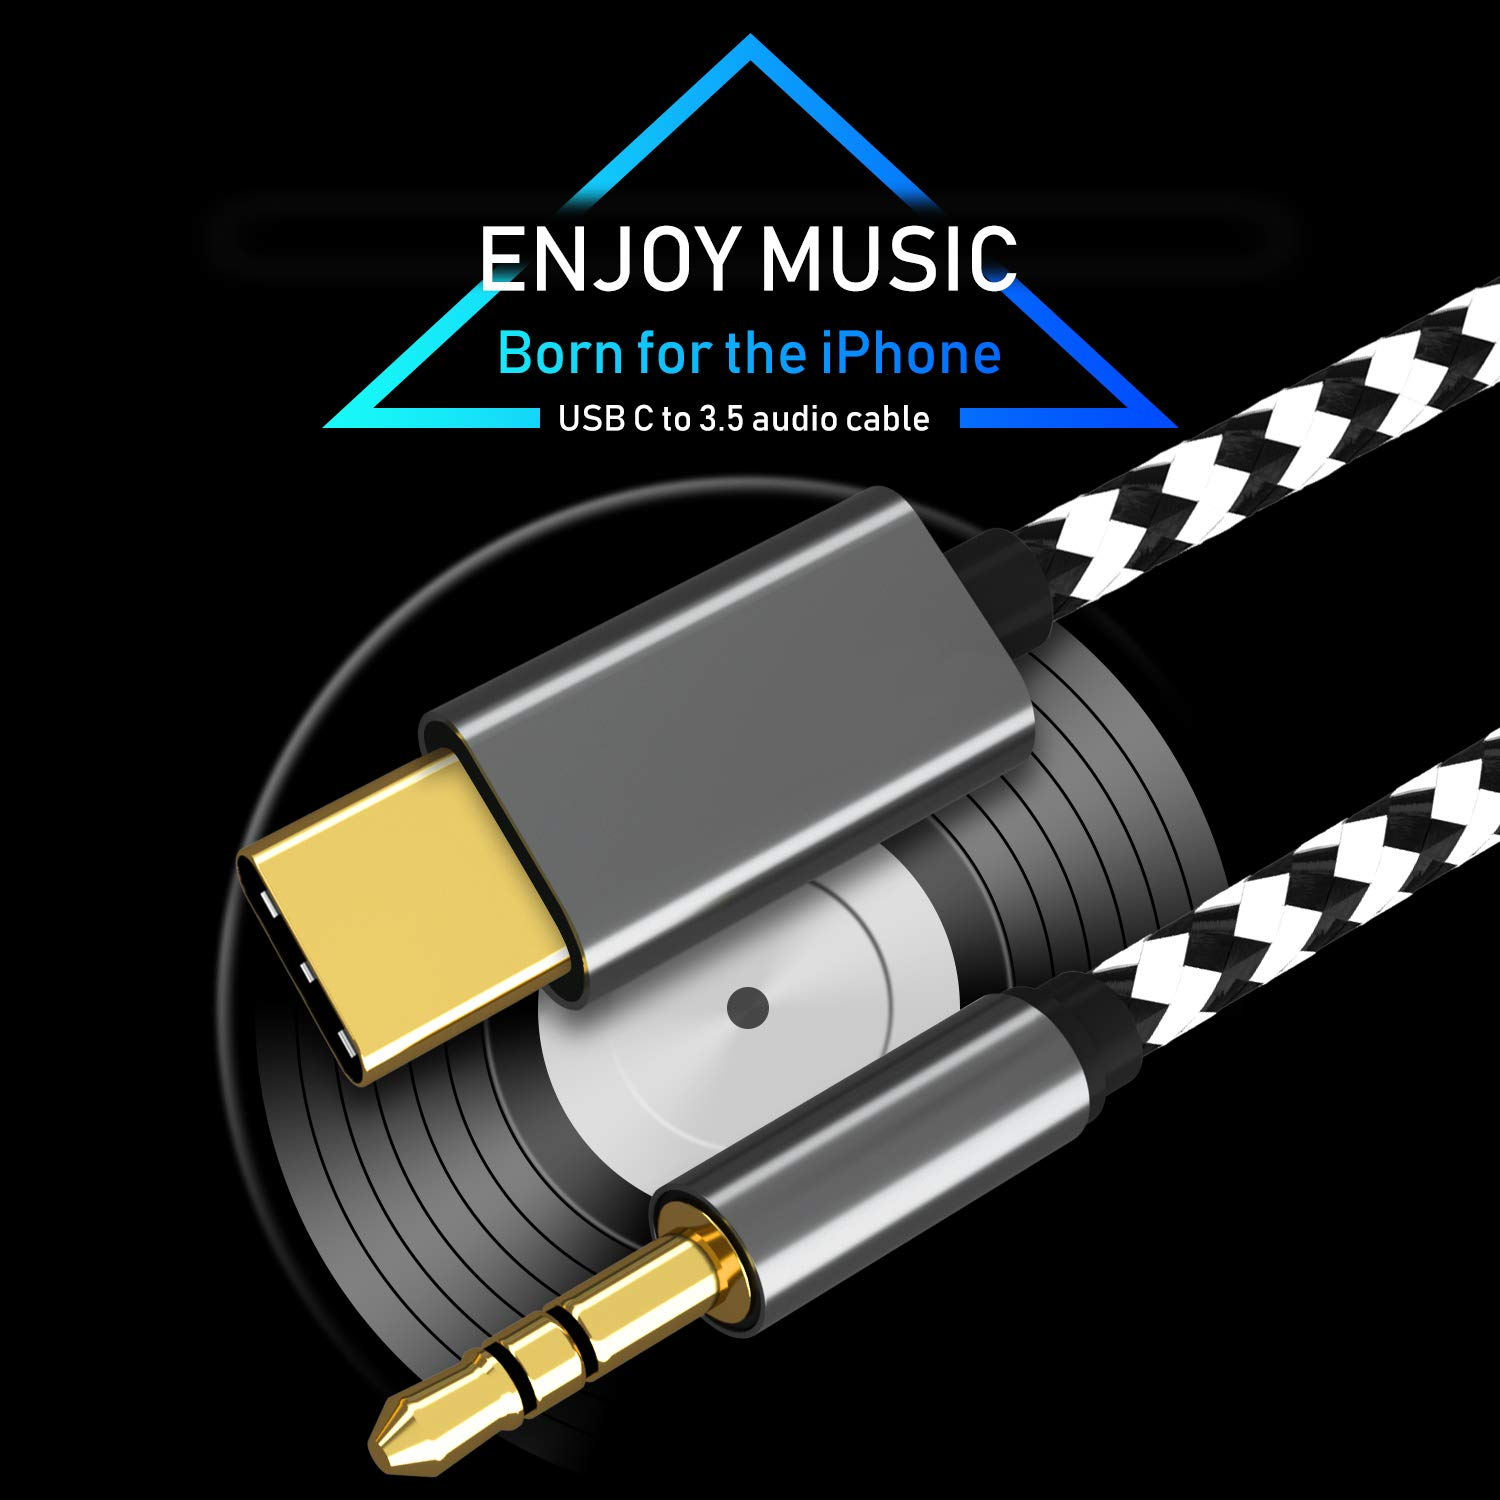 Huawei HTC U11 12 Moto Z Google Pixel 3//3XL//2//2XL USB-C to 3.5mm Aux Cable VIMVIP USB C to 3.5mm Male Headphone Audio Aux Adapter Type C to 3.5mm Car Aux Cord Compatible with Pad Pro 2018 1M